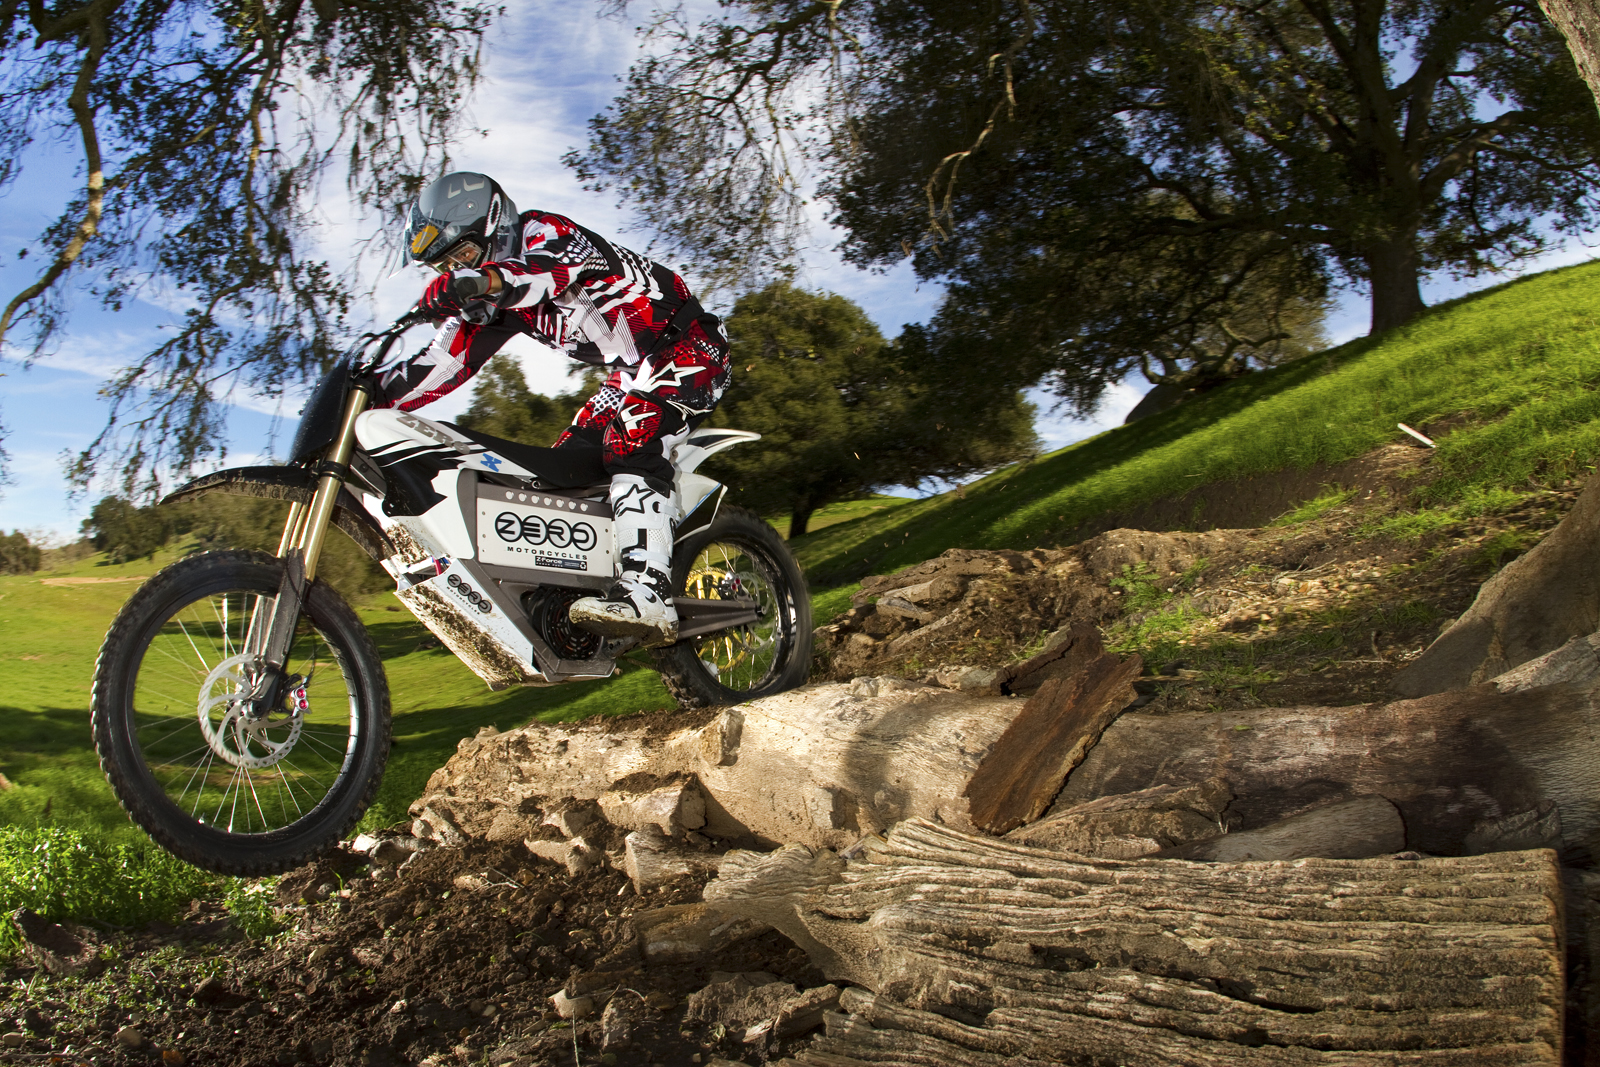 2010 Zero X Electric Motorcycle: Zaca Station - Trail over Log in Sun